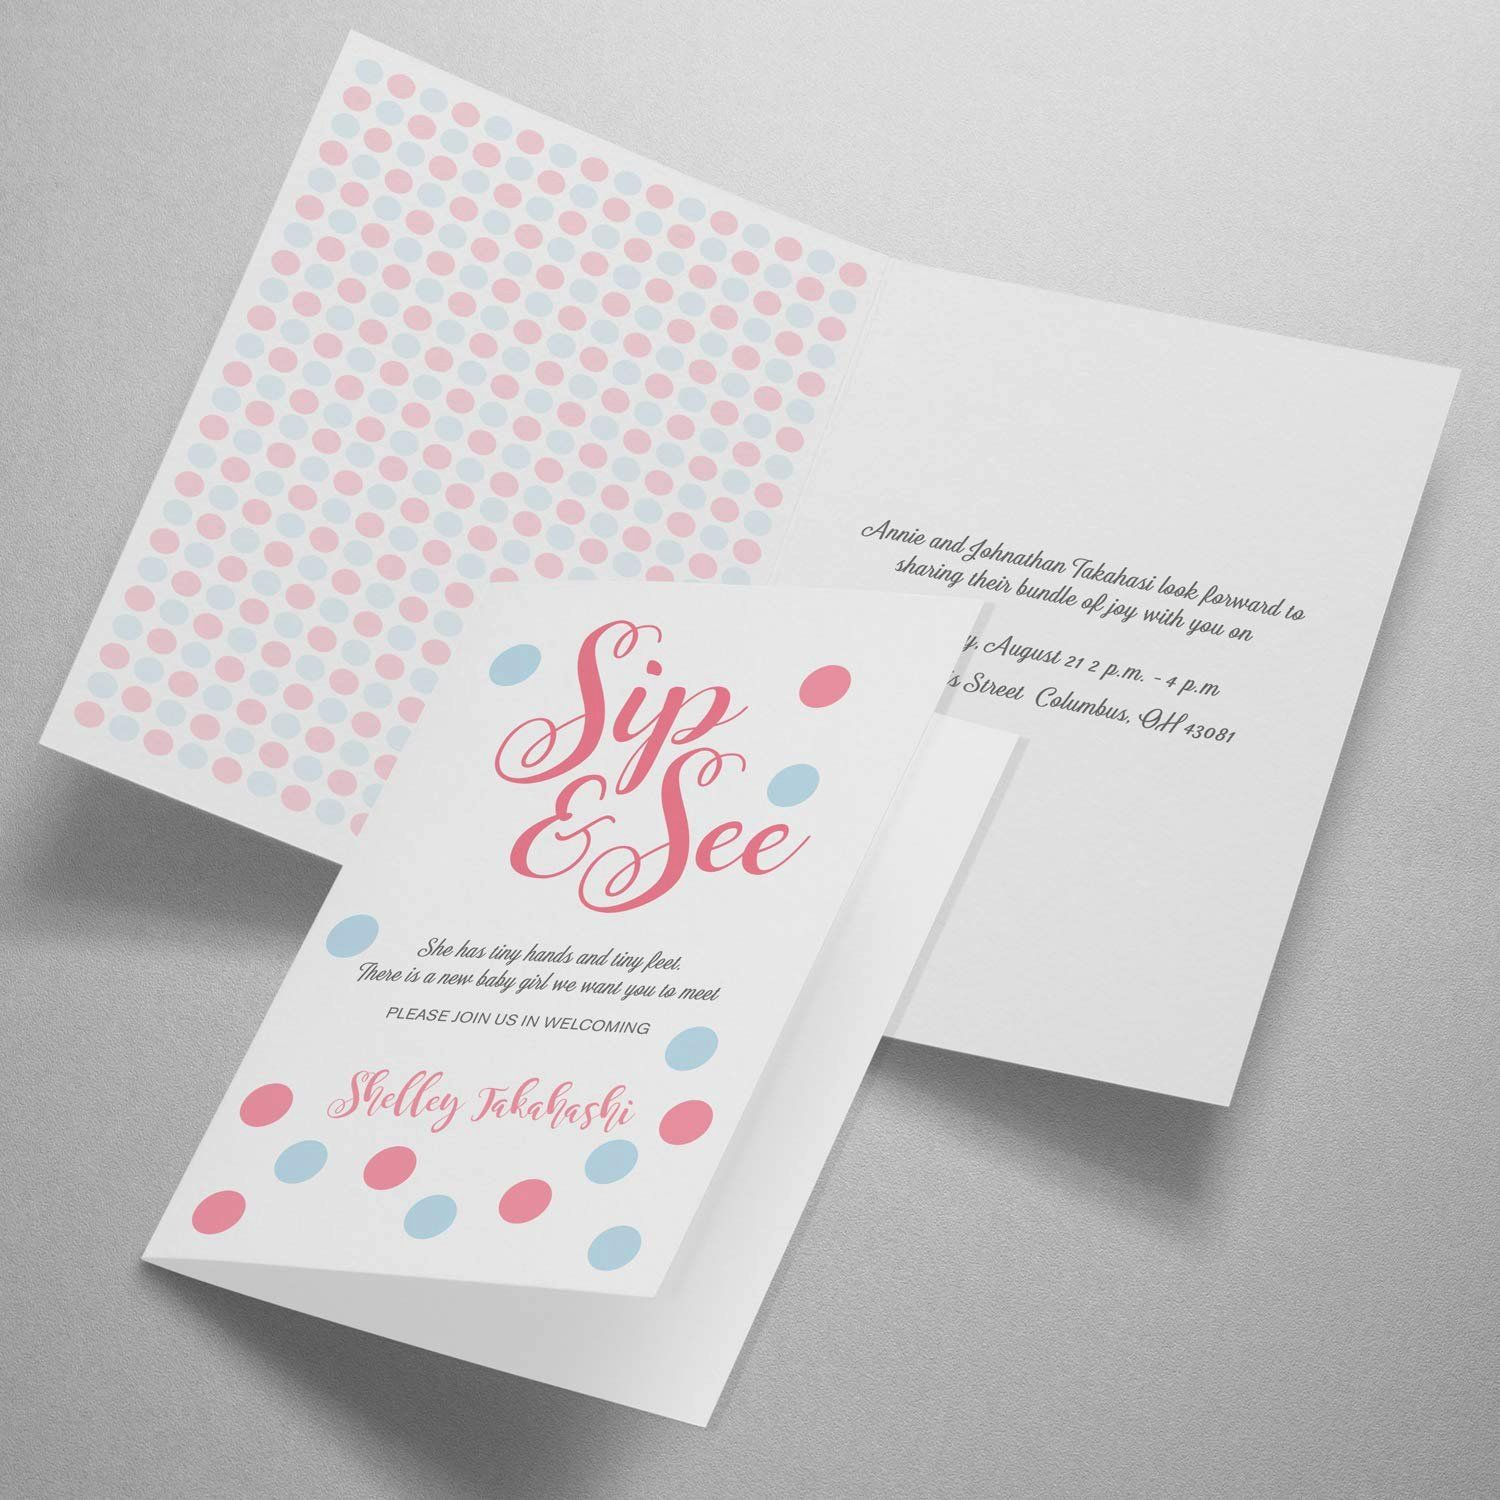 Folded Greeting Card Template Lovely Avery Half Fold Greeting Cards For Inkjet Printers 5 5 Printable Greeting Cards Greeting Card Template Card Template